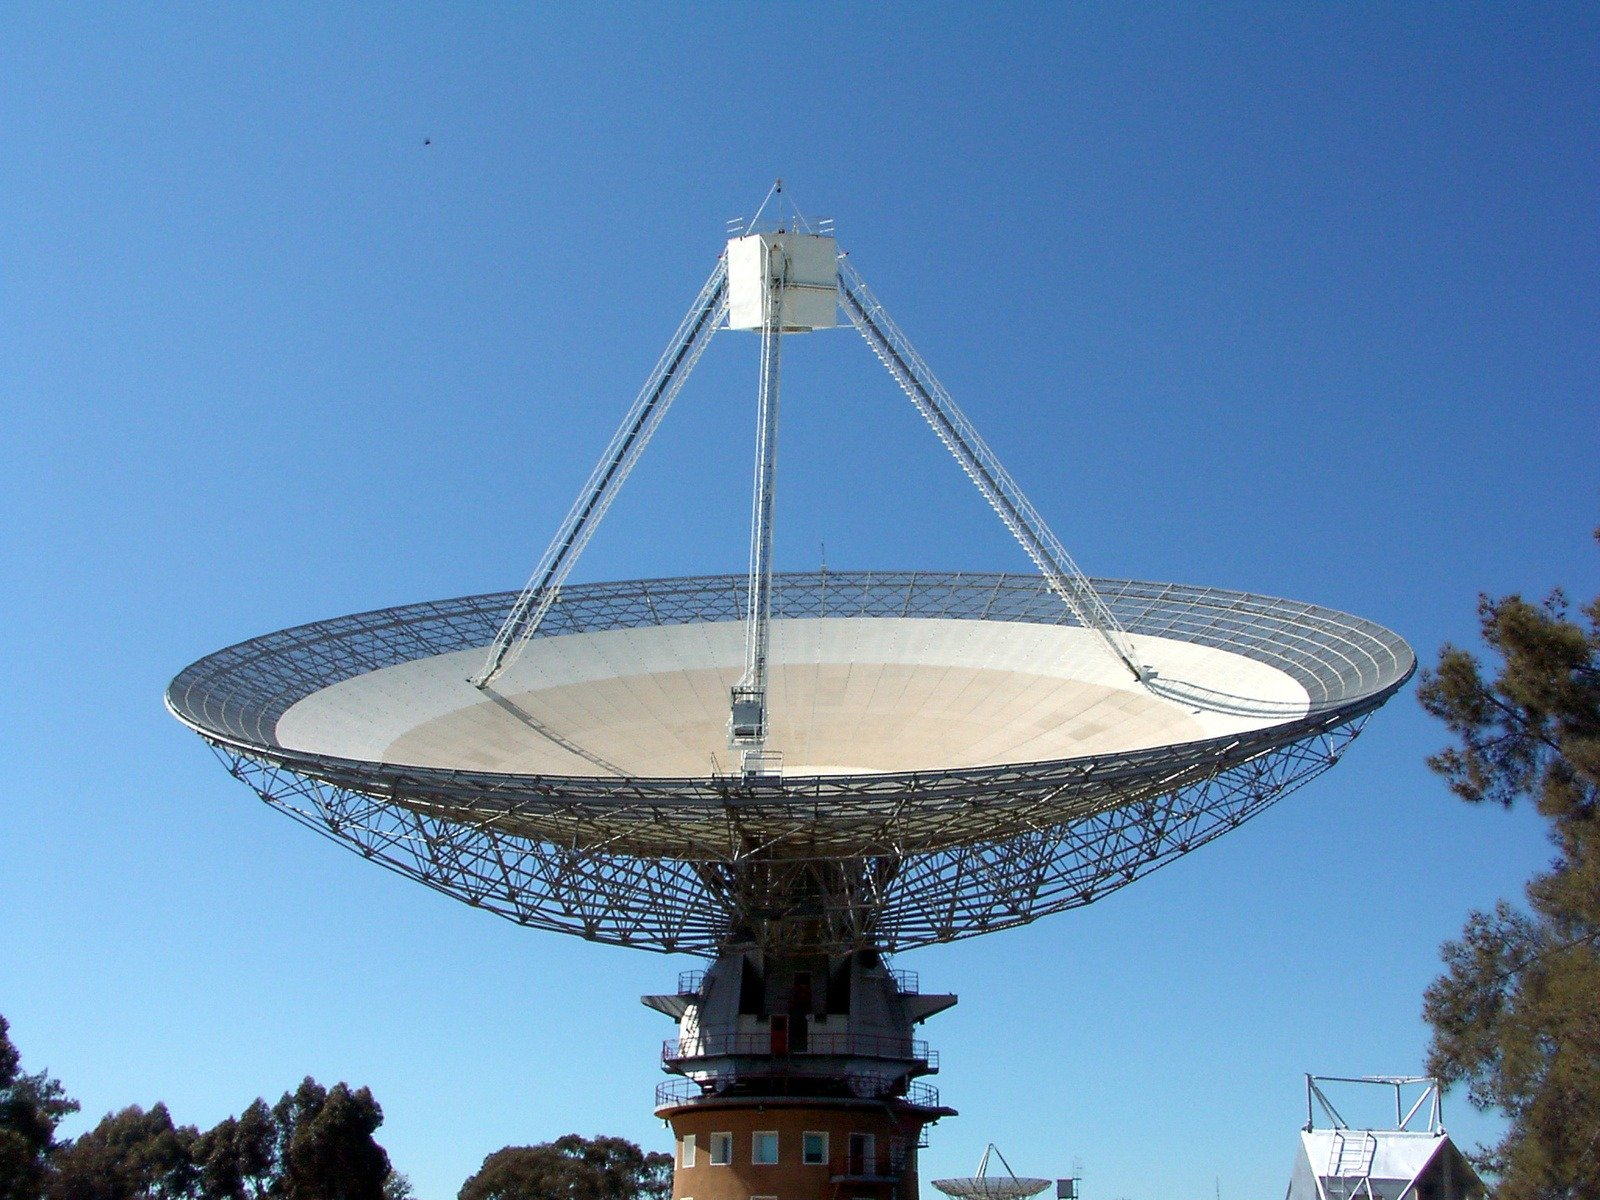 One of the big single dish radio telescopes